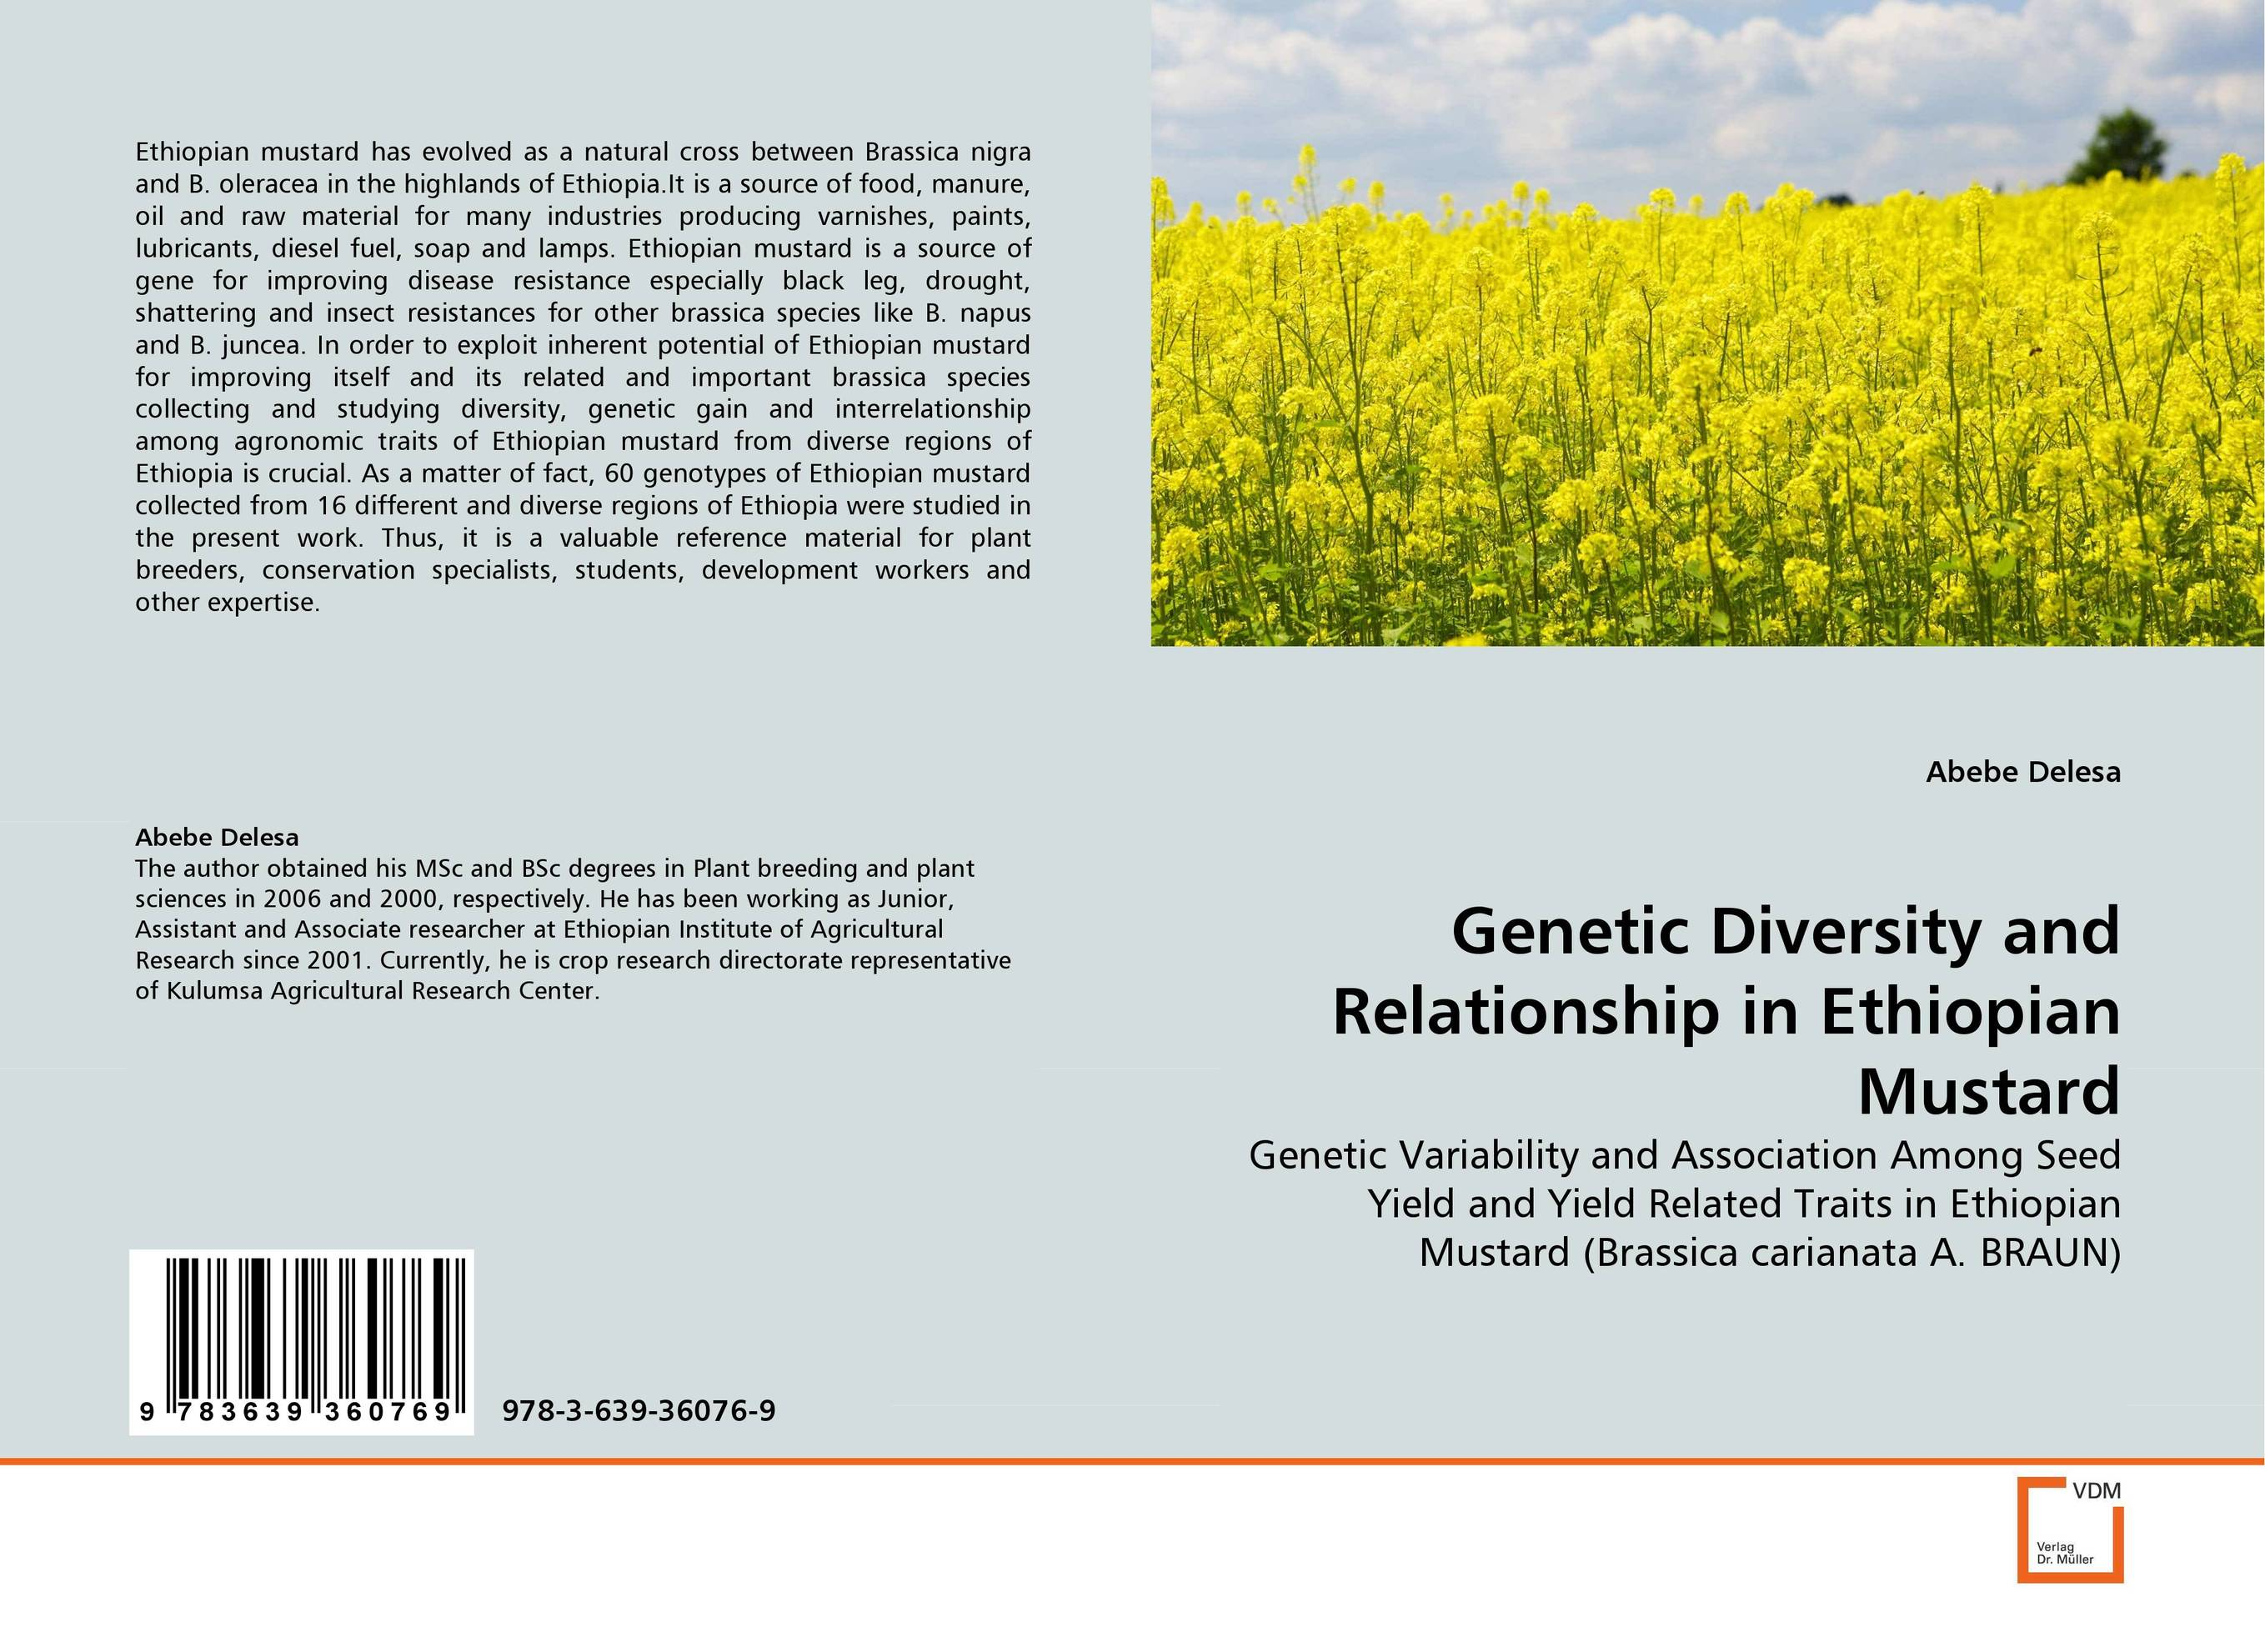 Genetic Diversity and Relationship in Ethiopian Mustard genanew bekele worku investment in land conservation in the ethiopian highlands